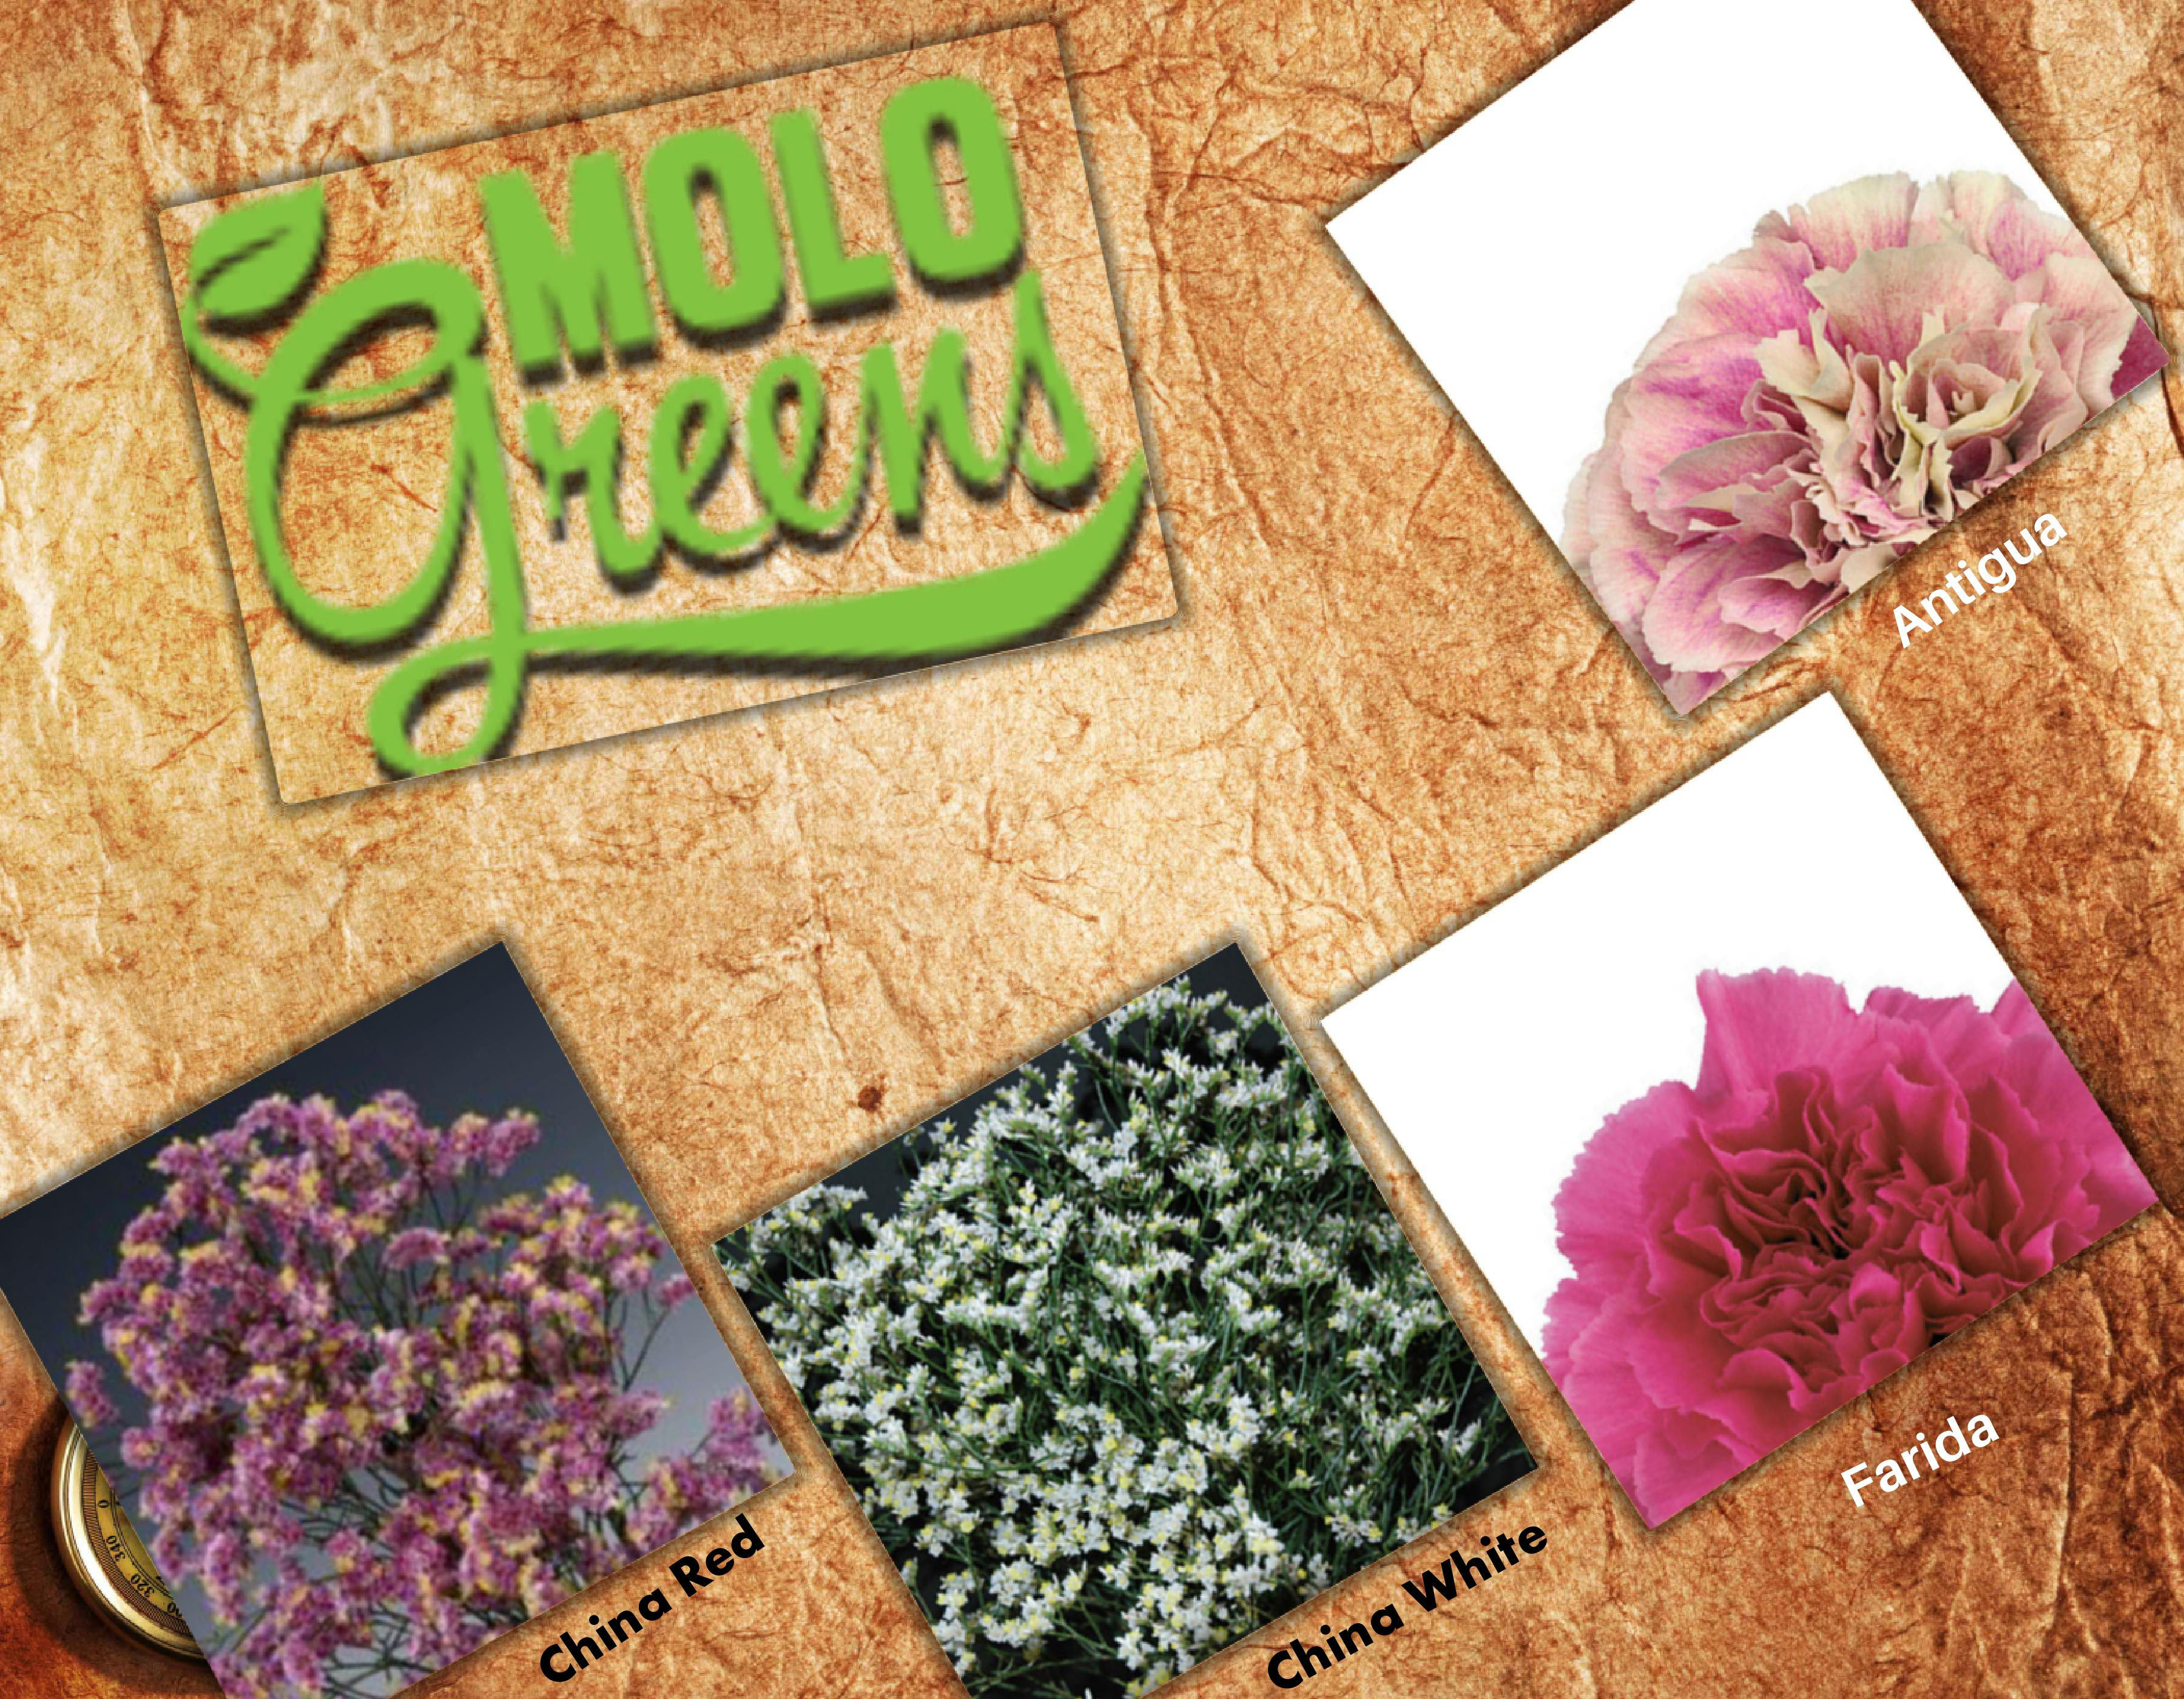 5004cb7bb39 Flowers From Molo Greens   Horticultural News